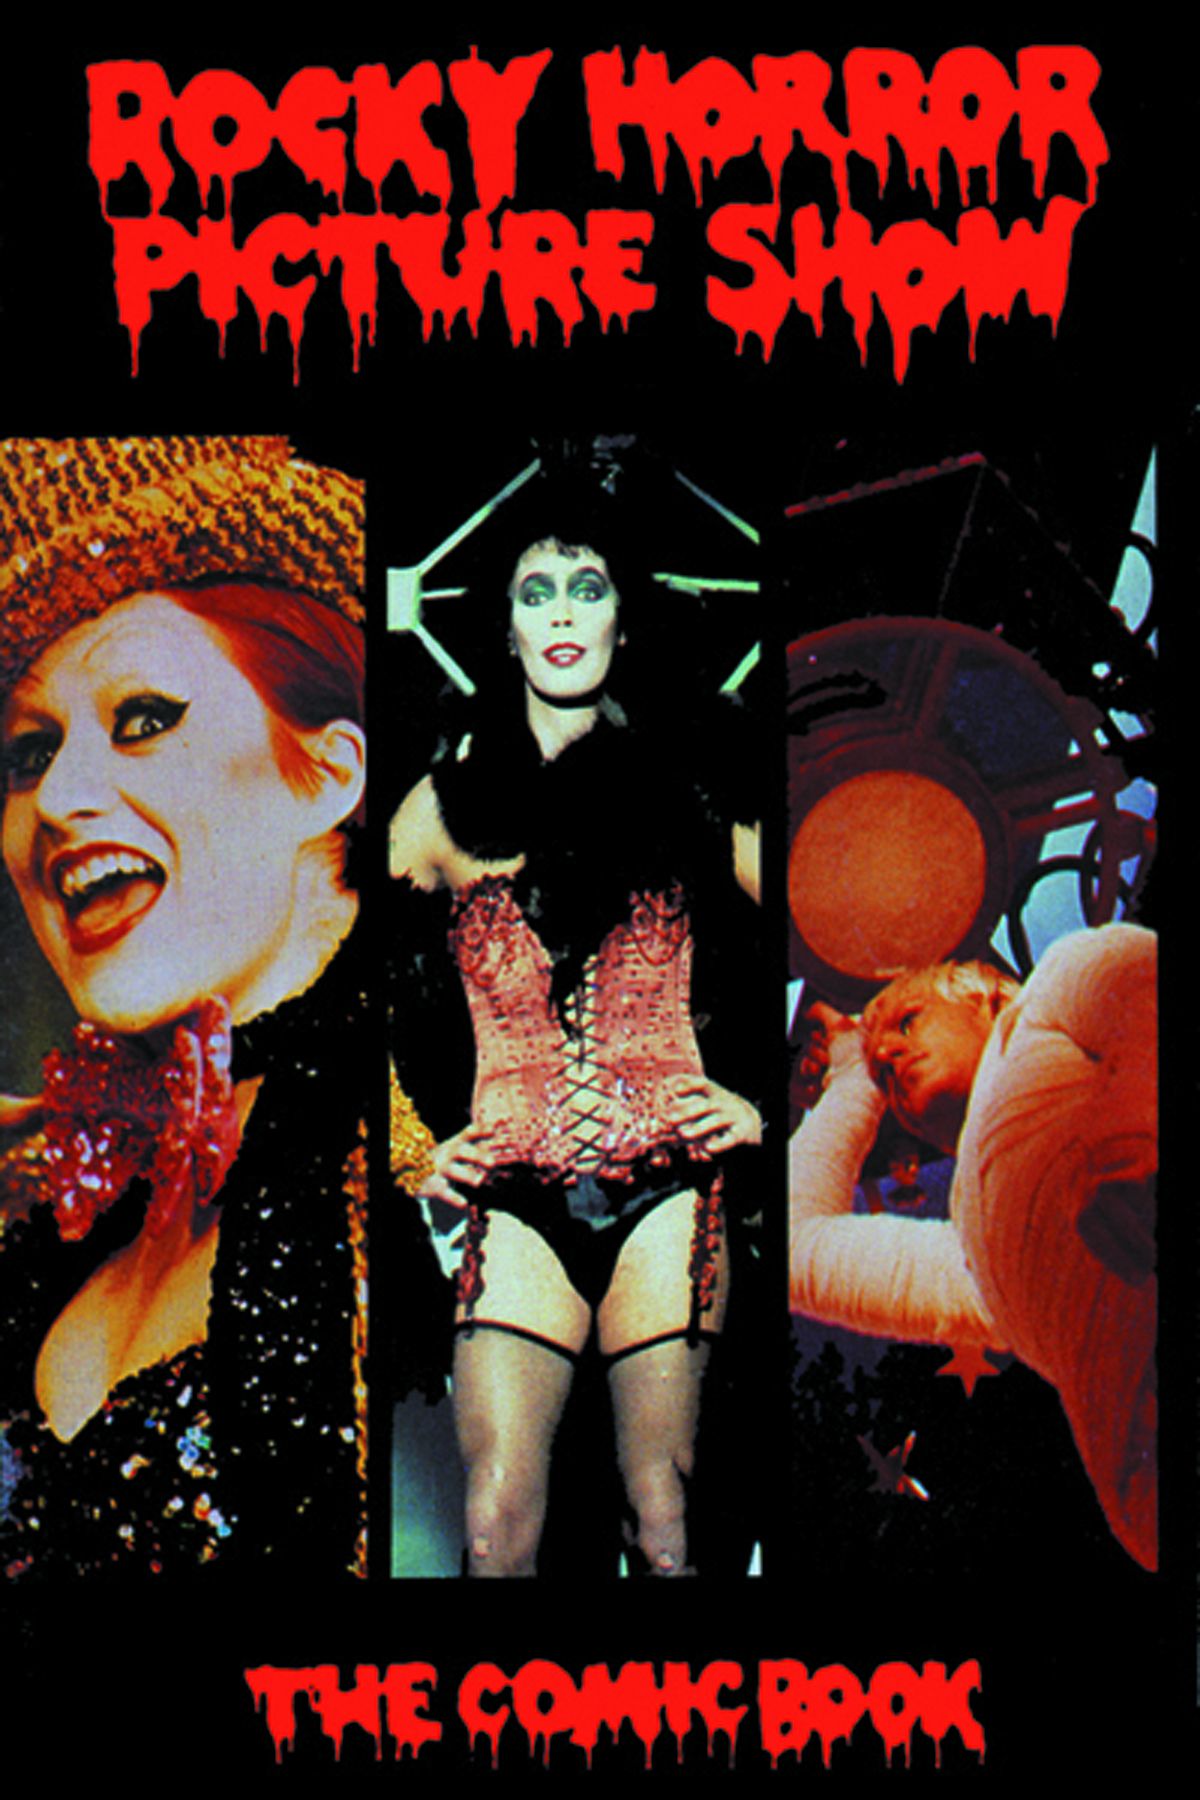 ROCKY HORROR PICTURE SHOW TP REVISED ED